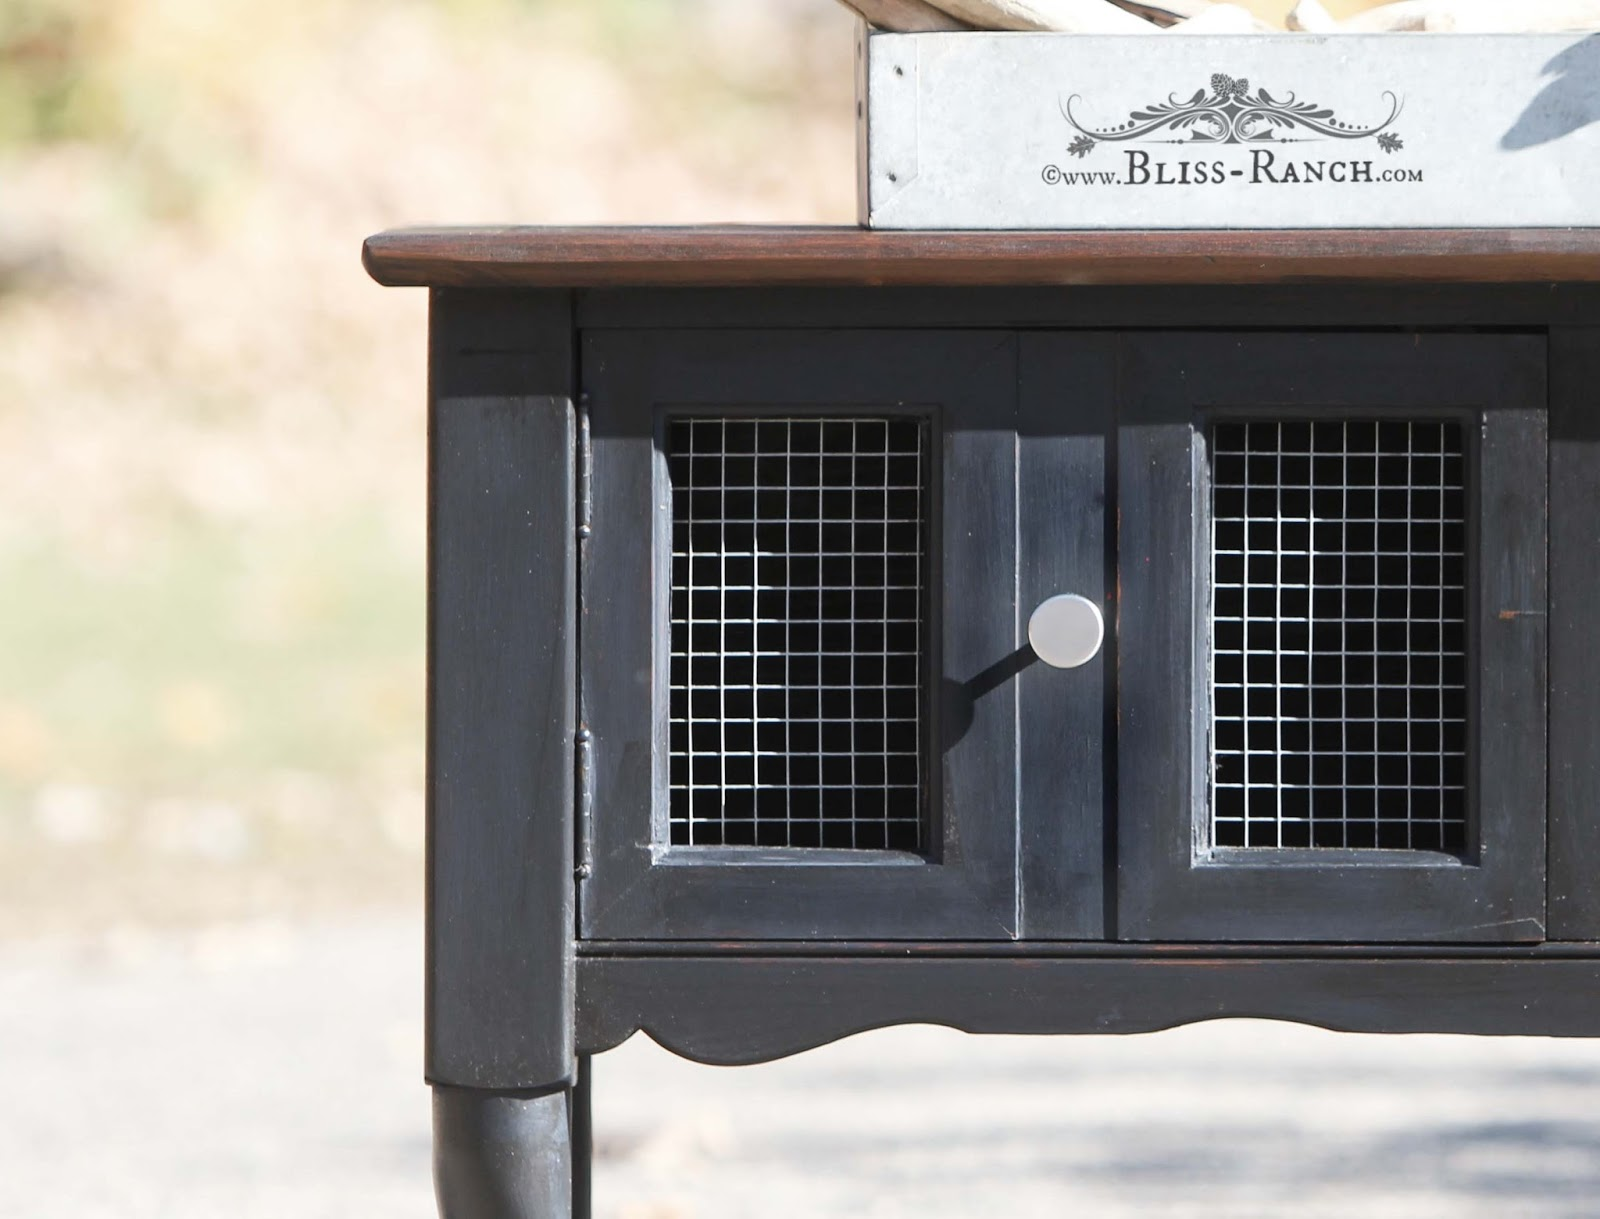 Upcycled Entertainment Center Bliss-Ranch.com